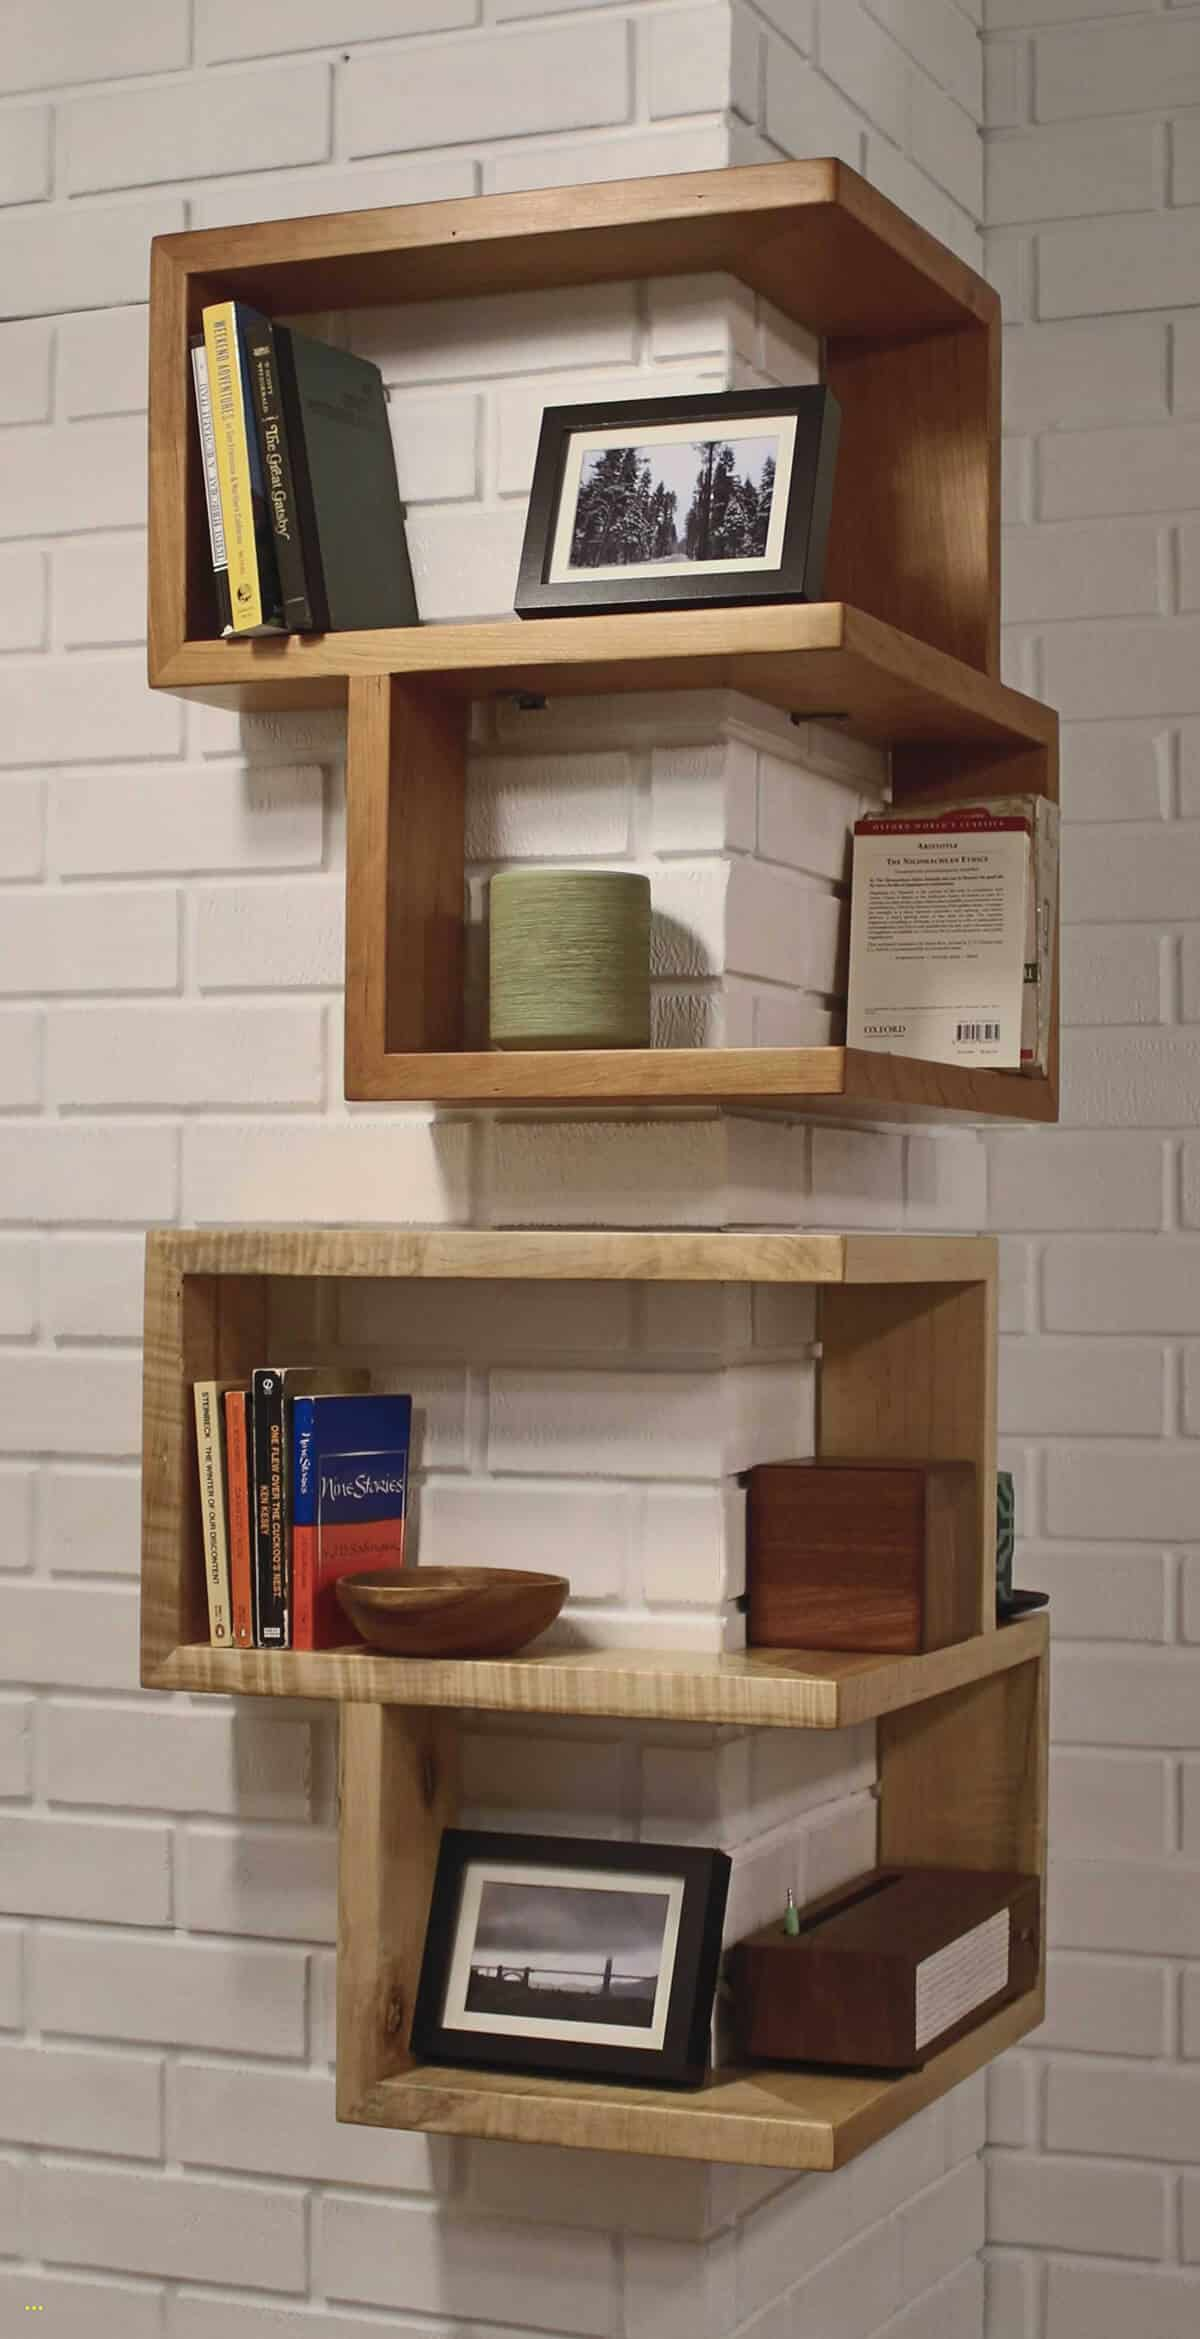 Outward corner floating geometric wood shelving works great on these hard-to-use corner areas